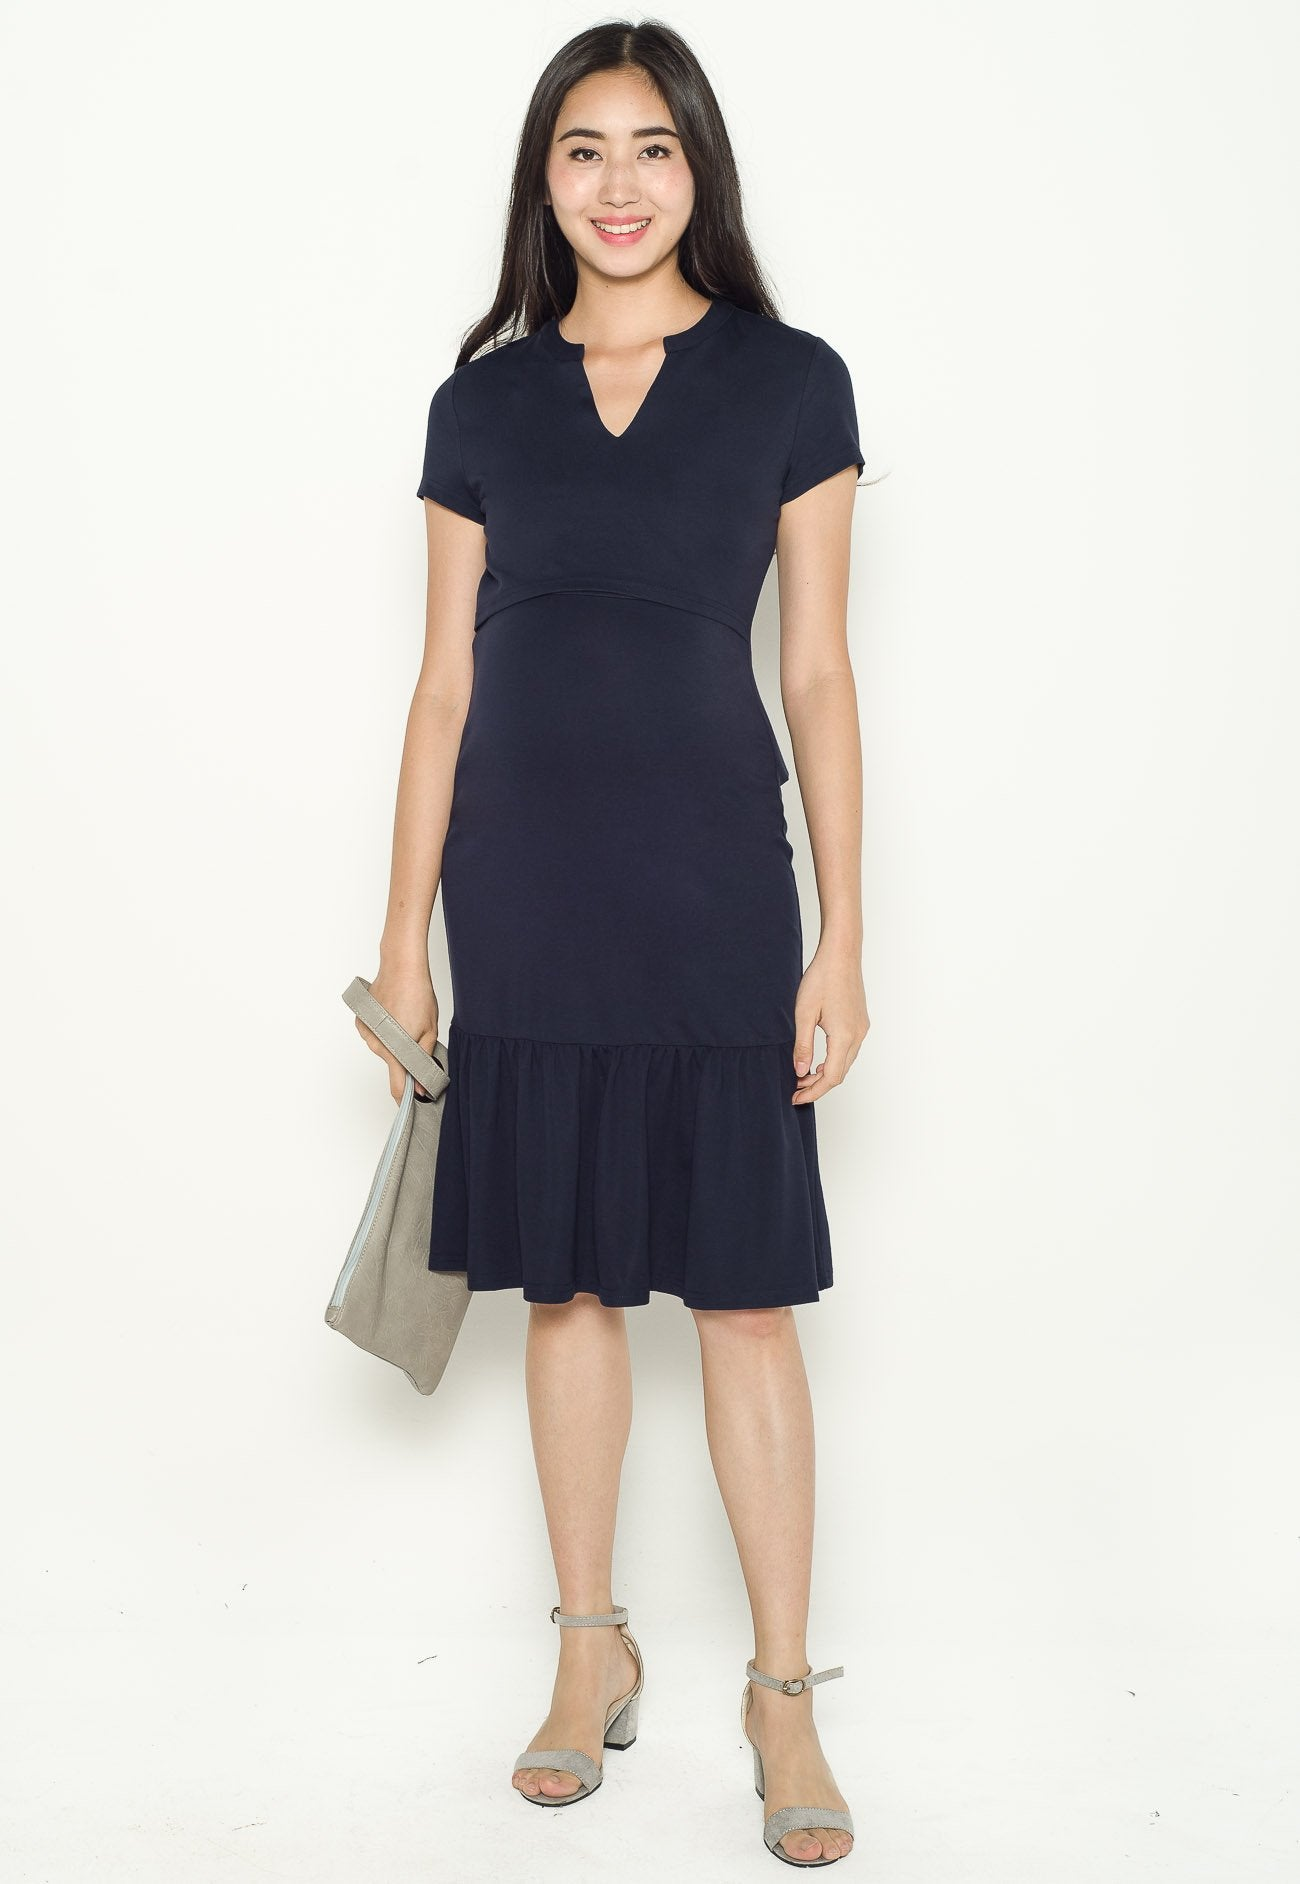 Carla Mermaid Nursing Dress in Navy  by Jump Eat Cry - Maternity and nursing wear